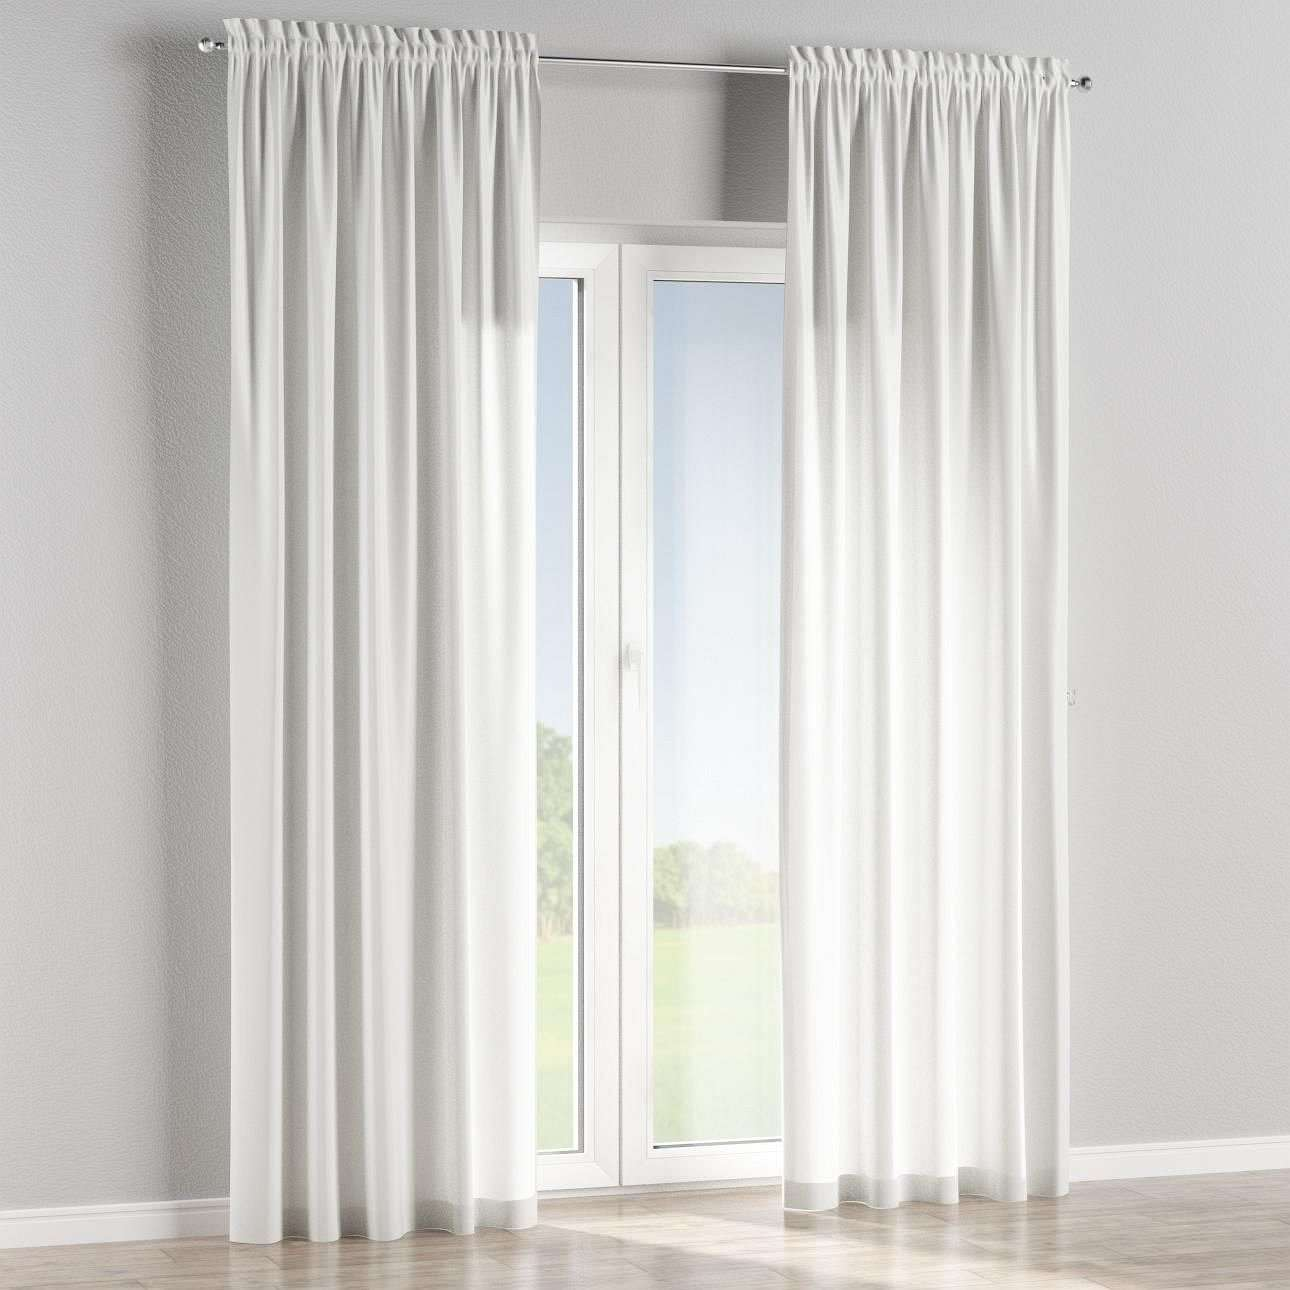 Slot and frill curtains in collection SALE, fabric: 130-06